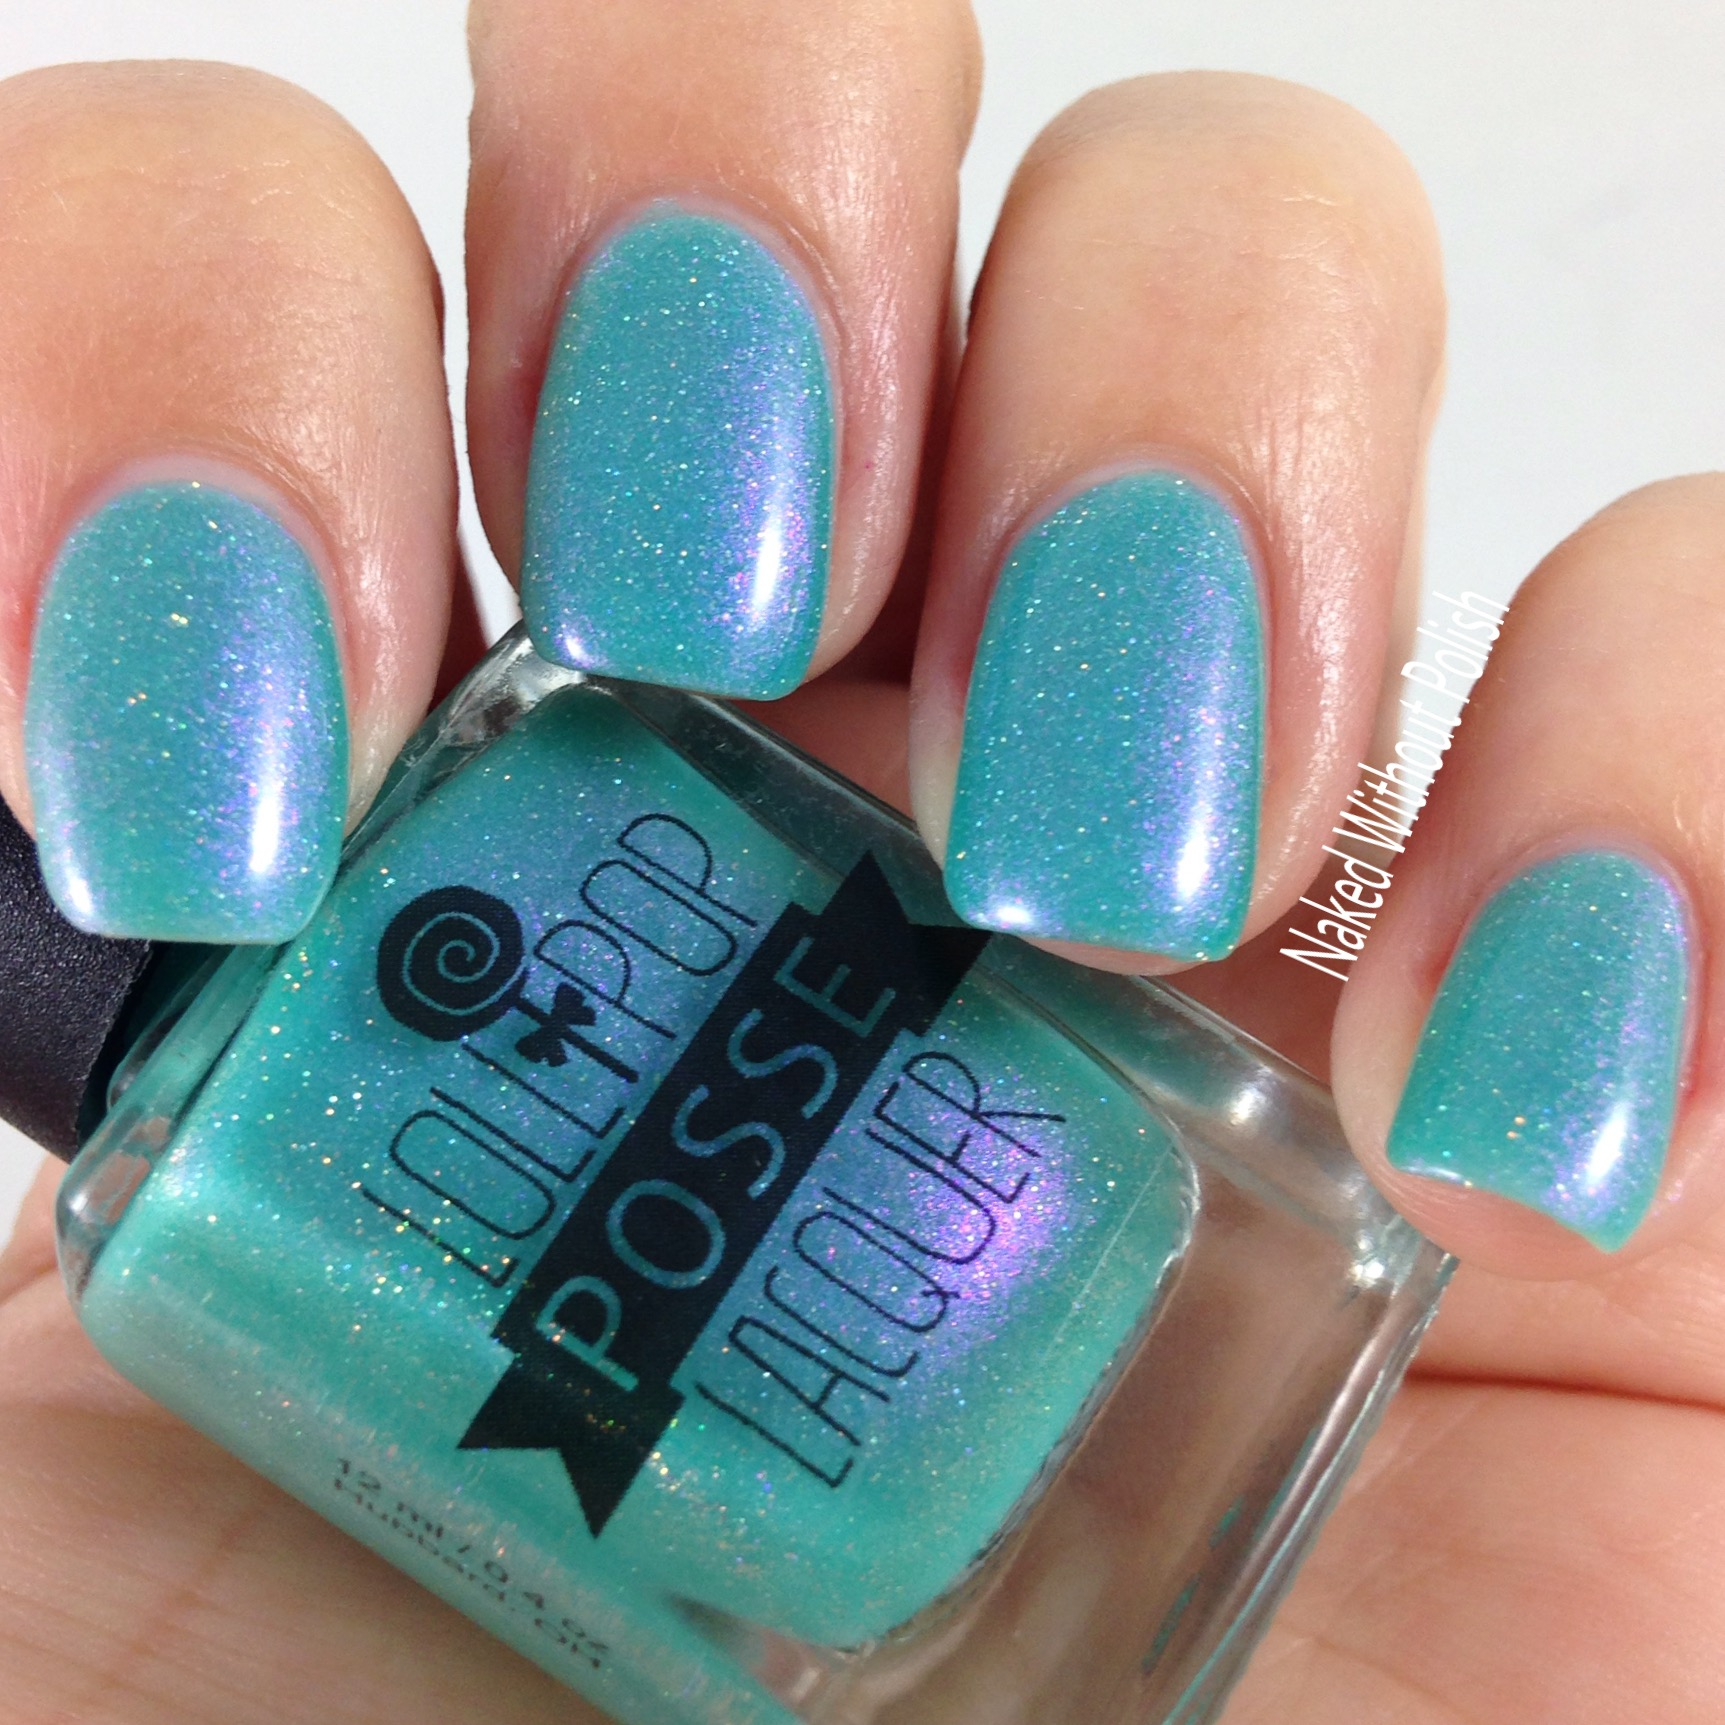 Lollipop-Posse-Lacquer-But-My-Hands-are-Busy-in-the-Air-6